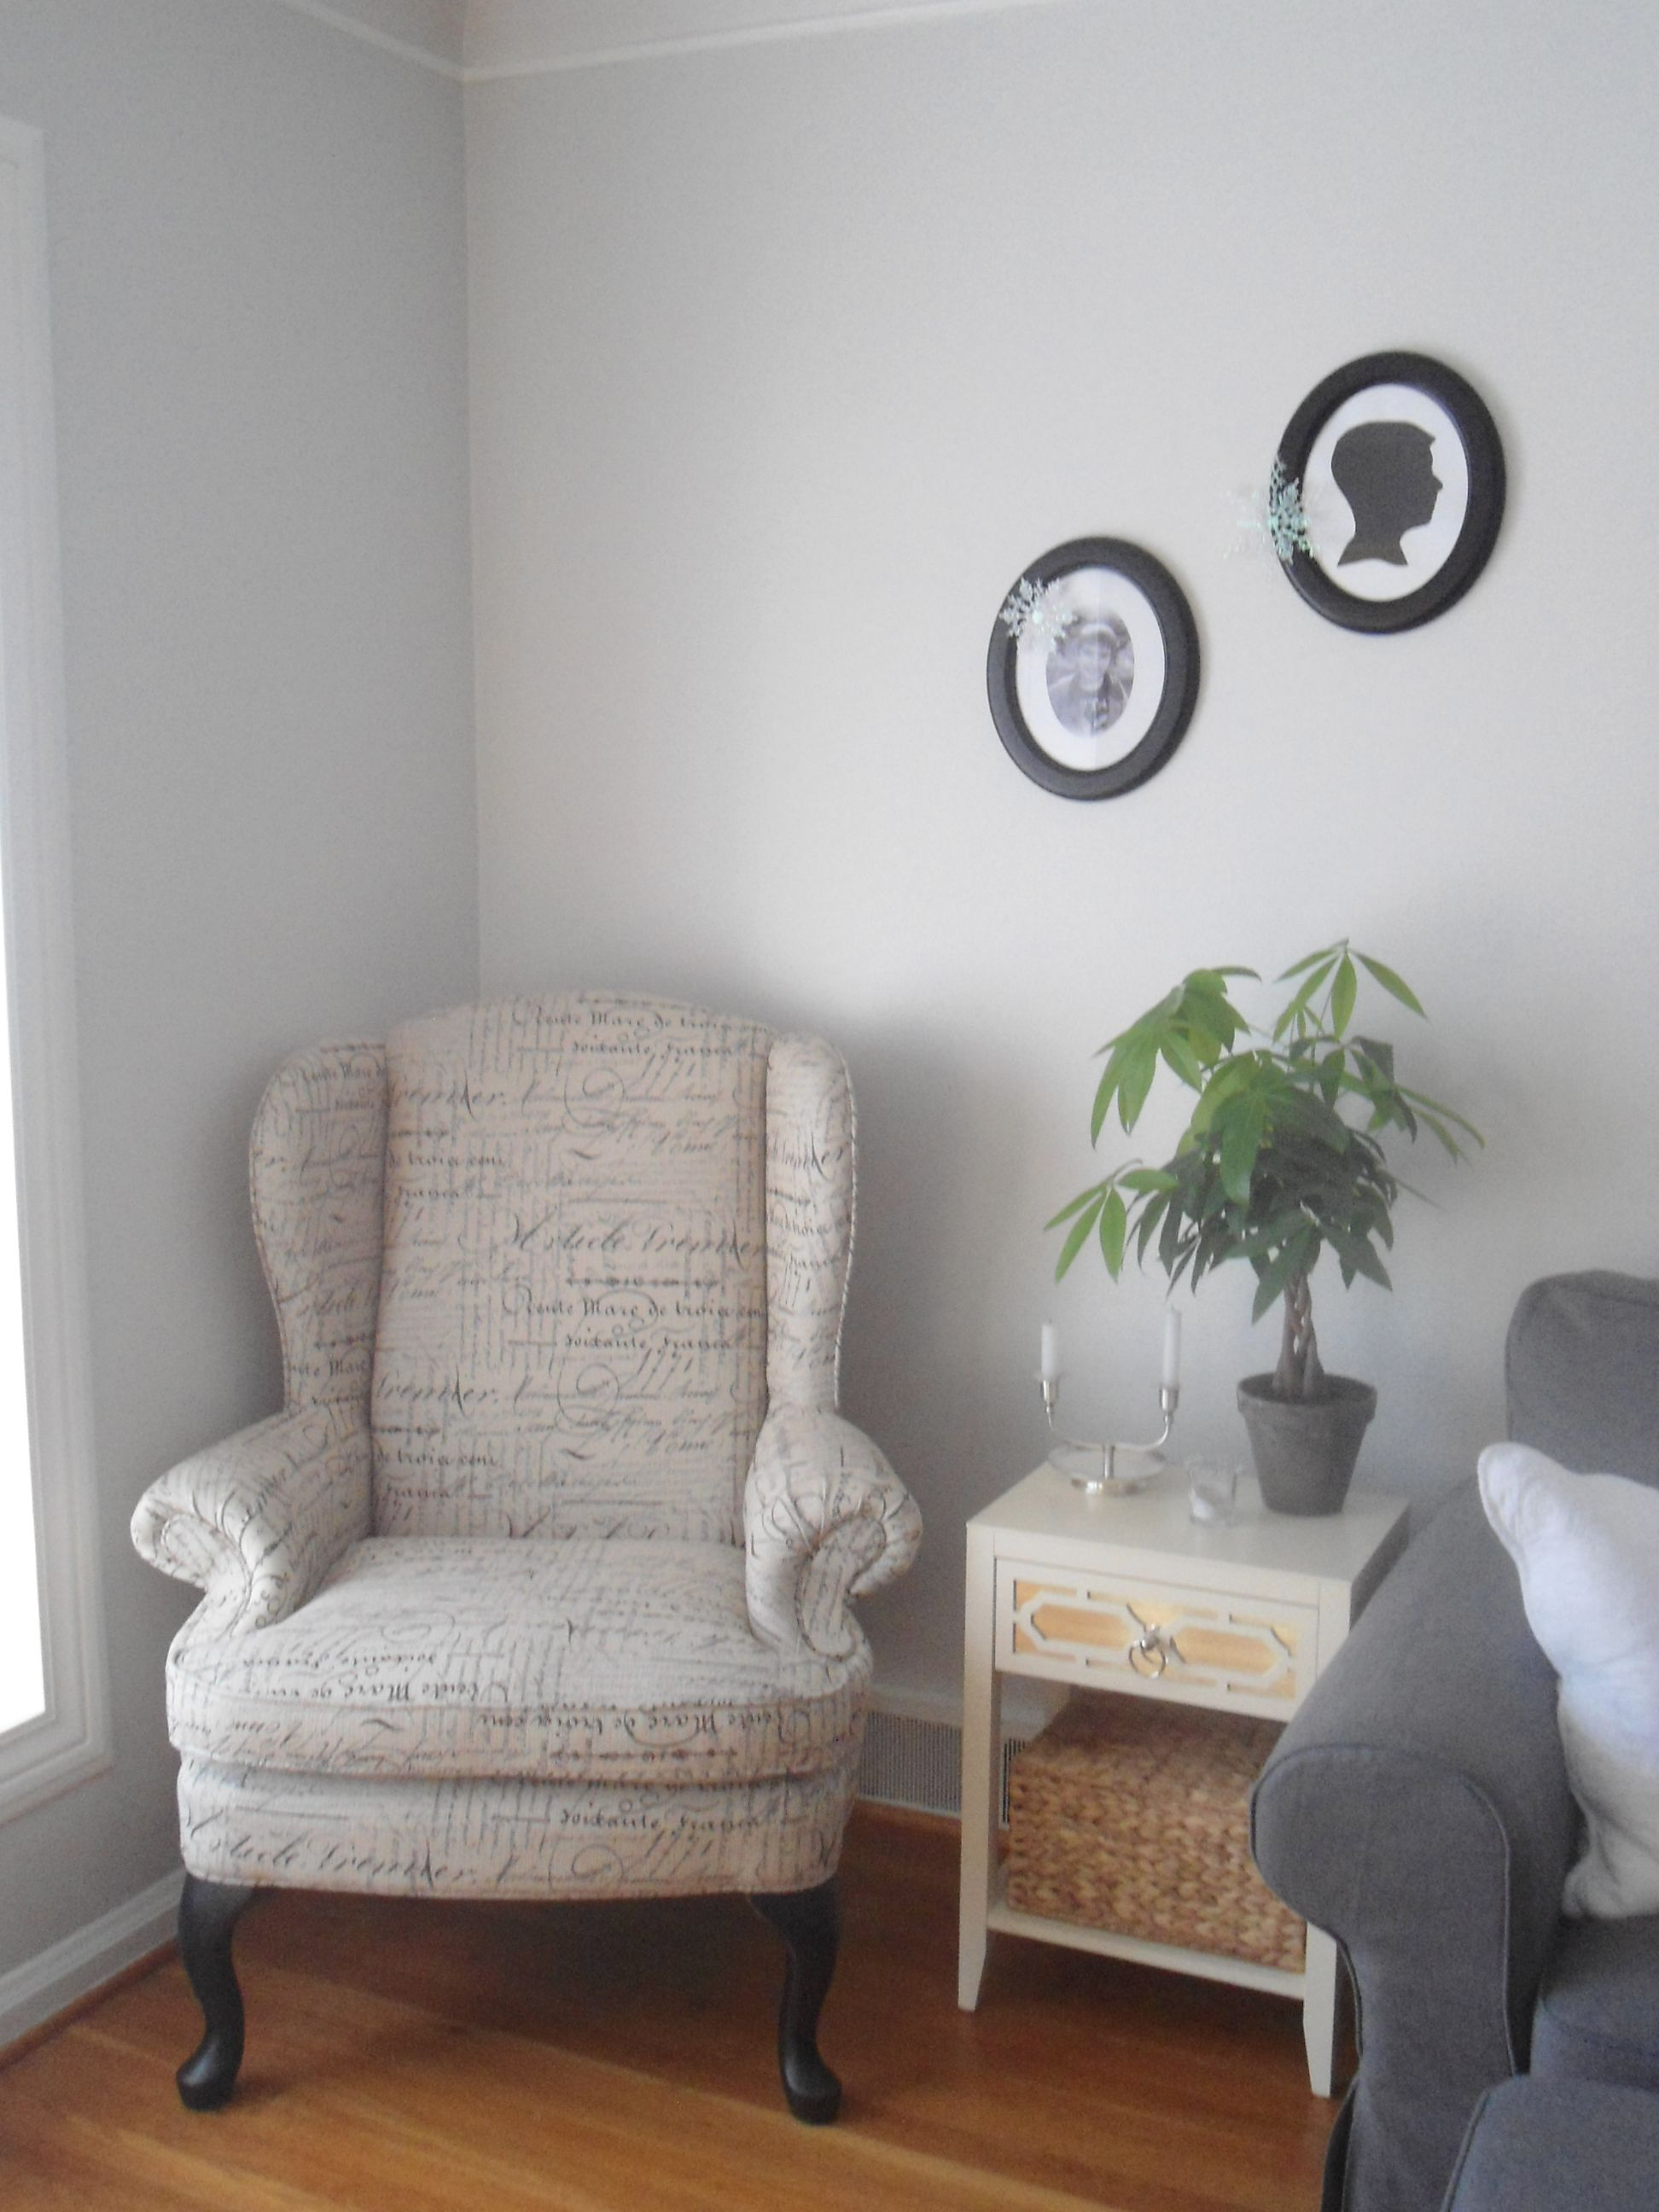 Living room paint color benjamin moore gray owl oc 52 at for Gray owl benjamin moore